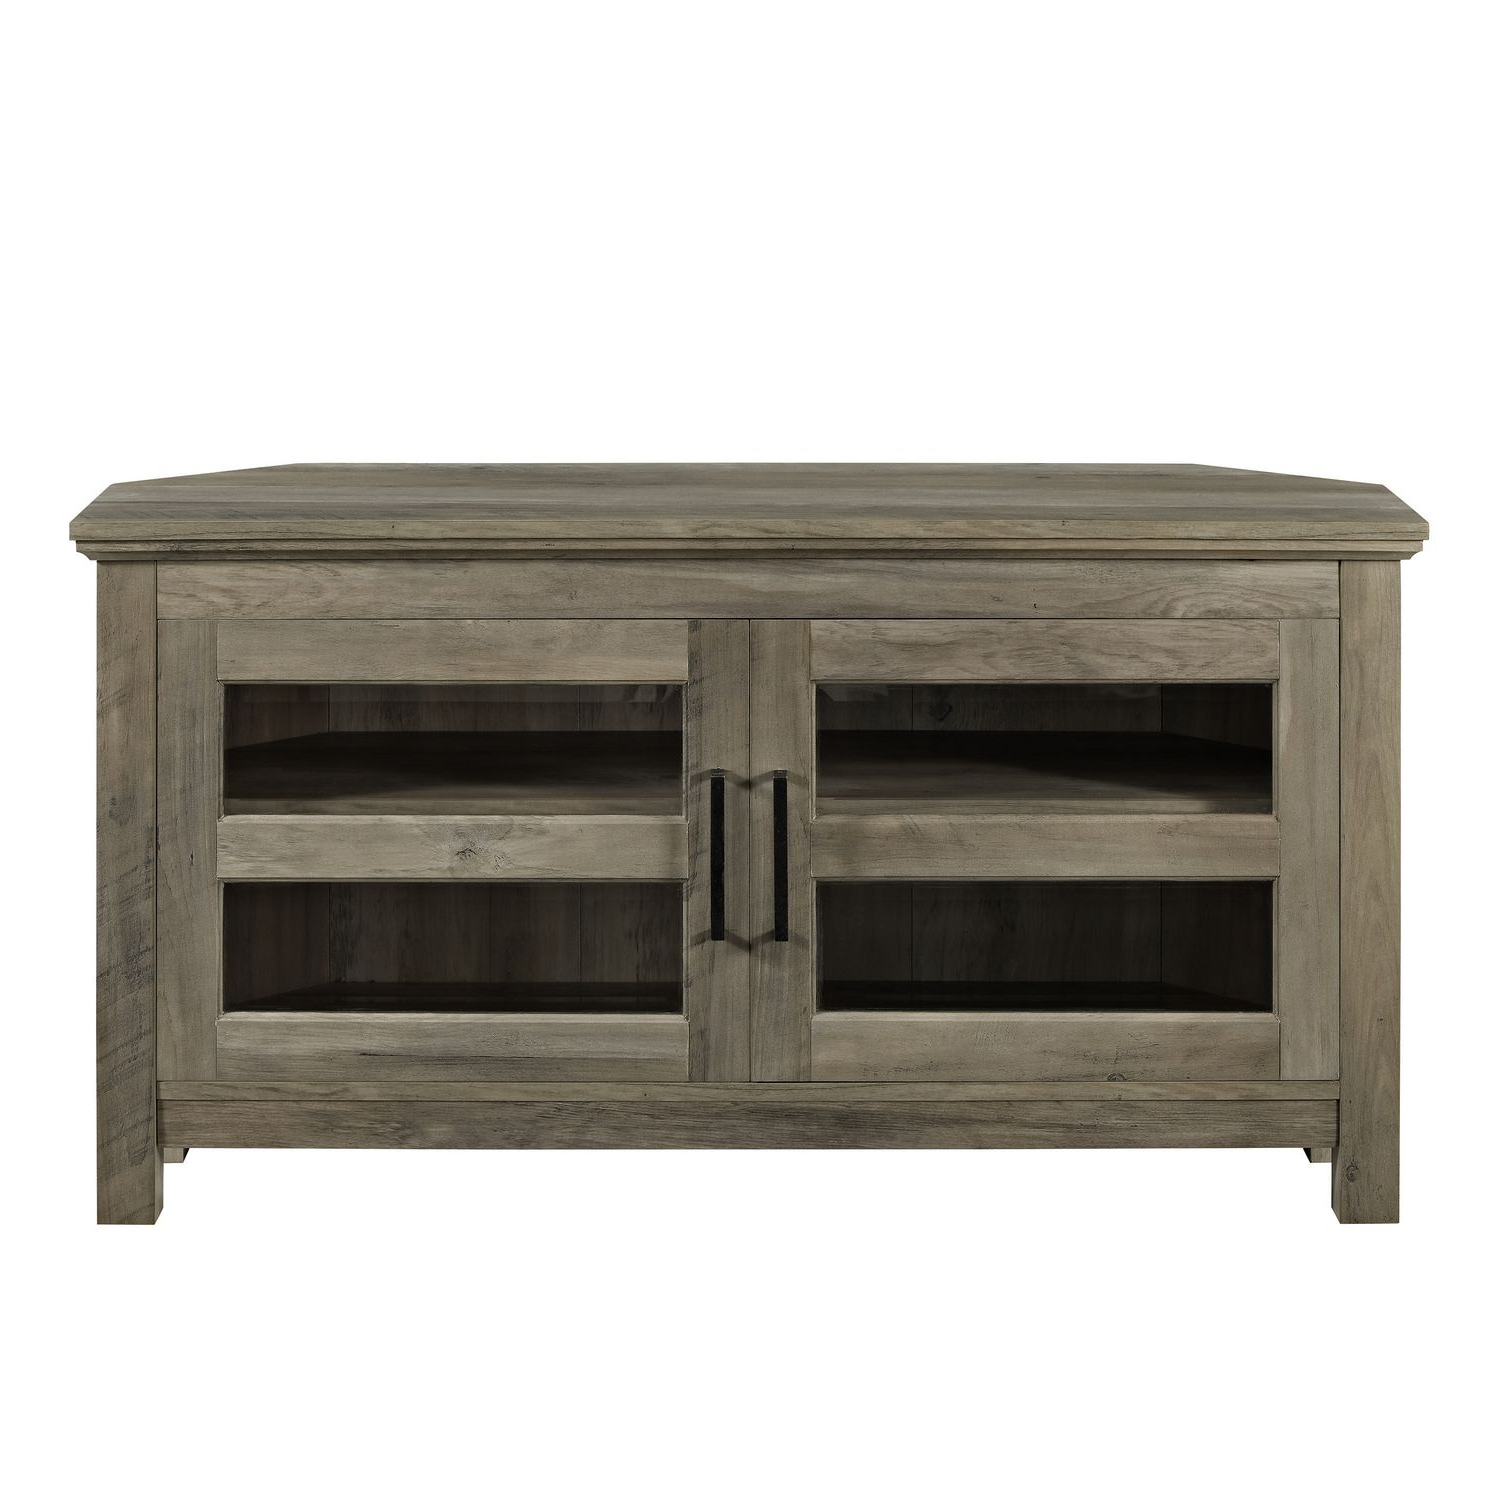 Manor Park Modern Farmhouse Corner Tv Stand For Tv's Up To For Avalene Rustic Farmhouse Corner Tv Stands (View 12 of 20)